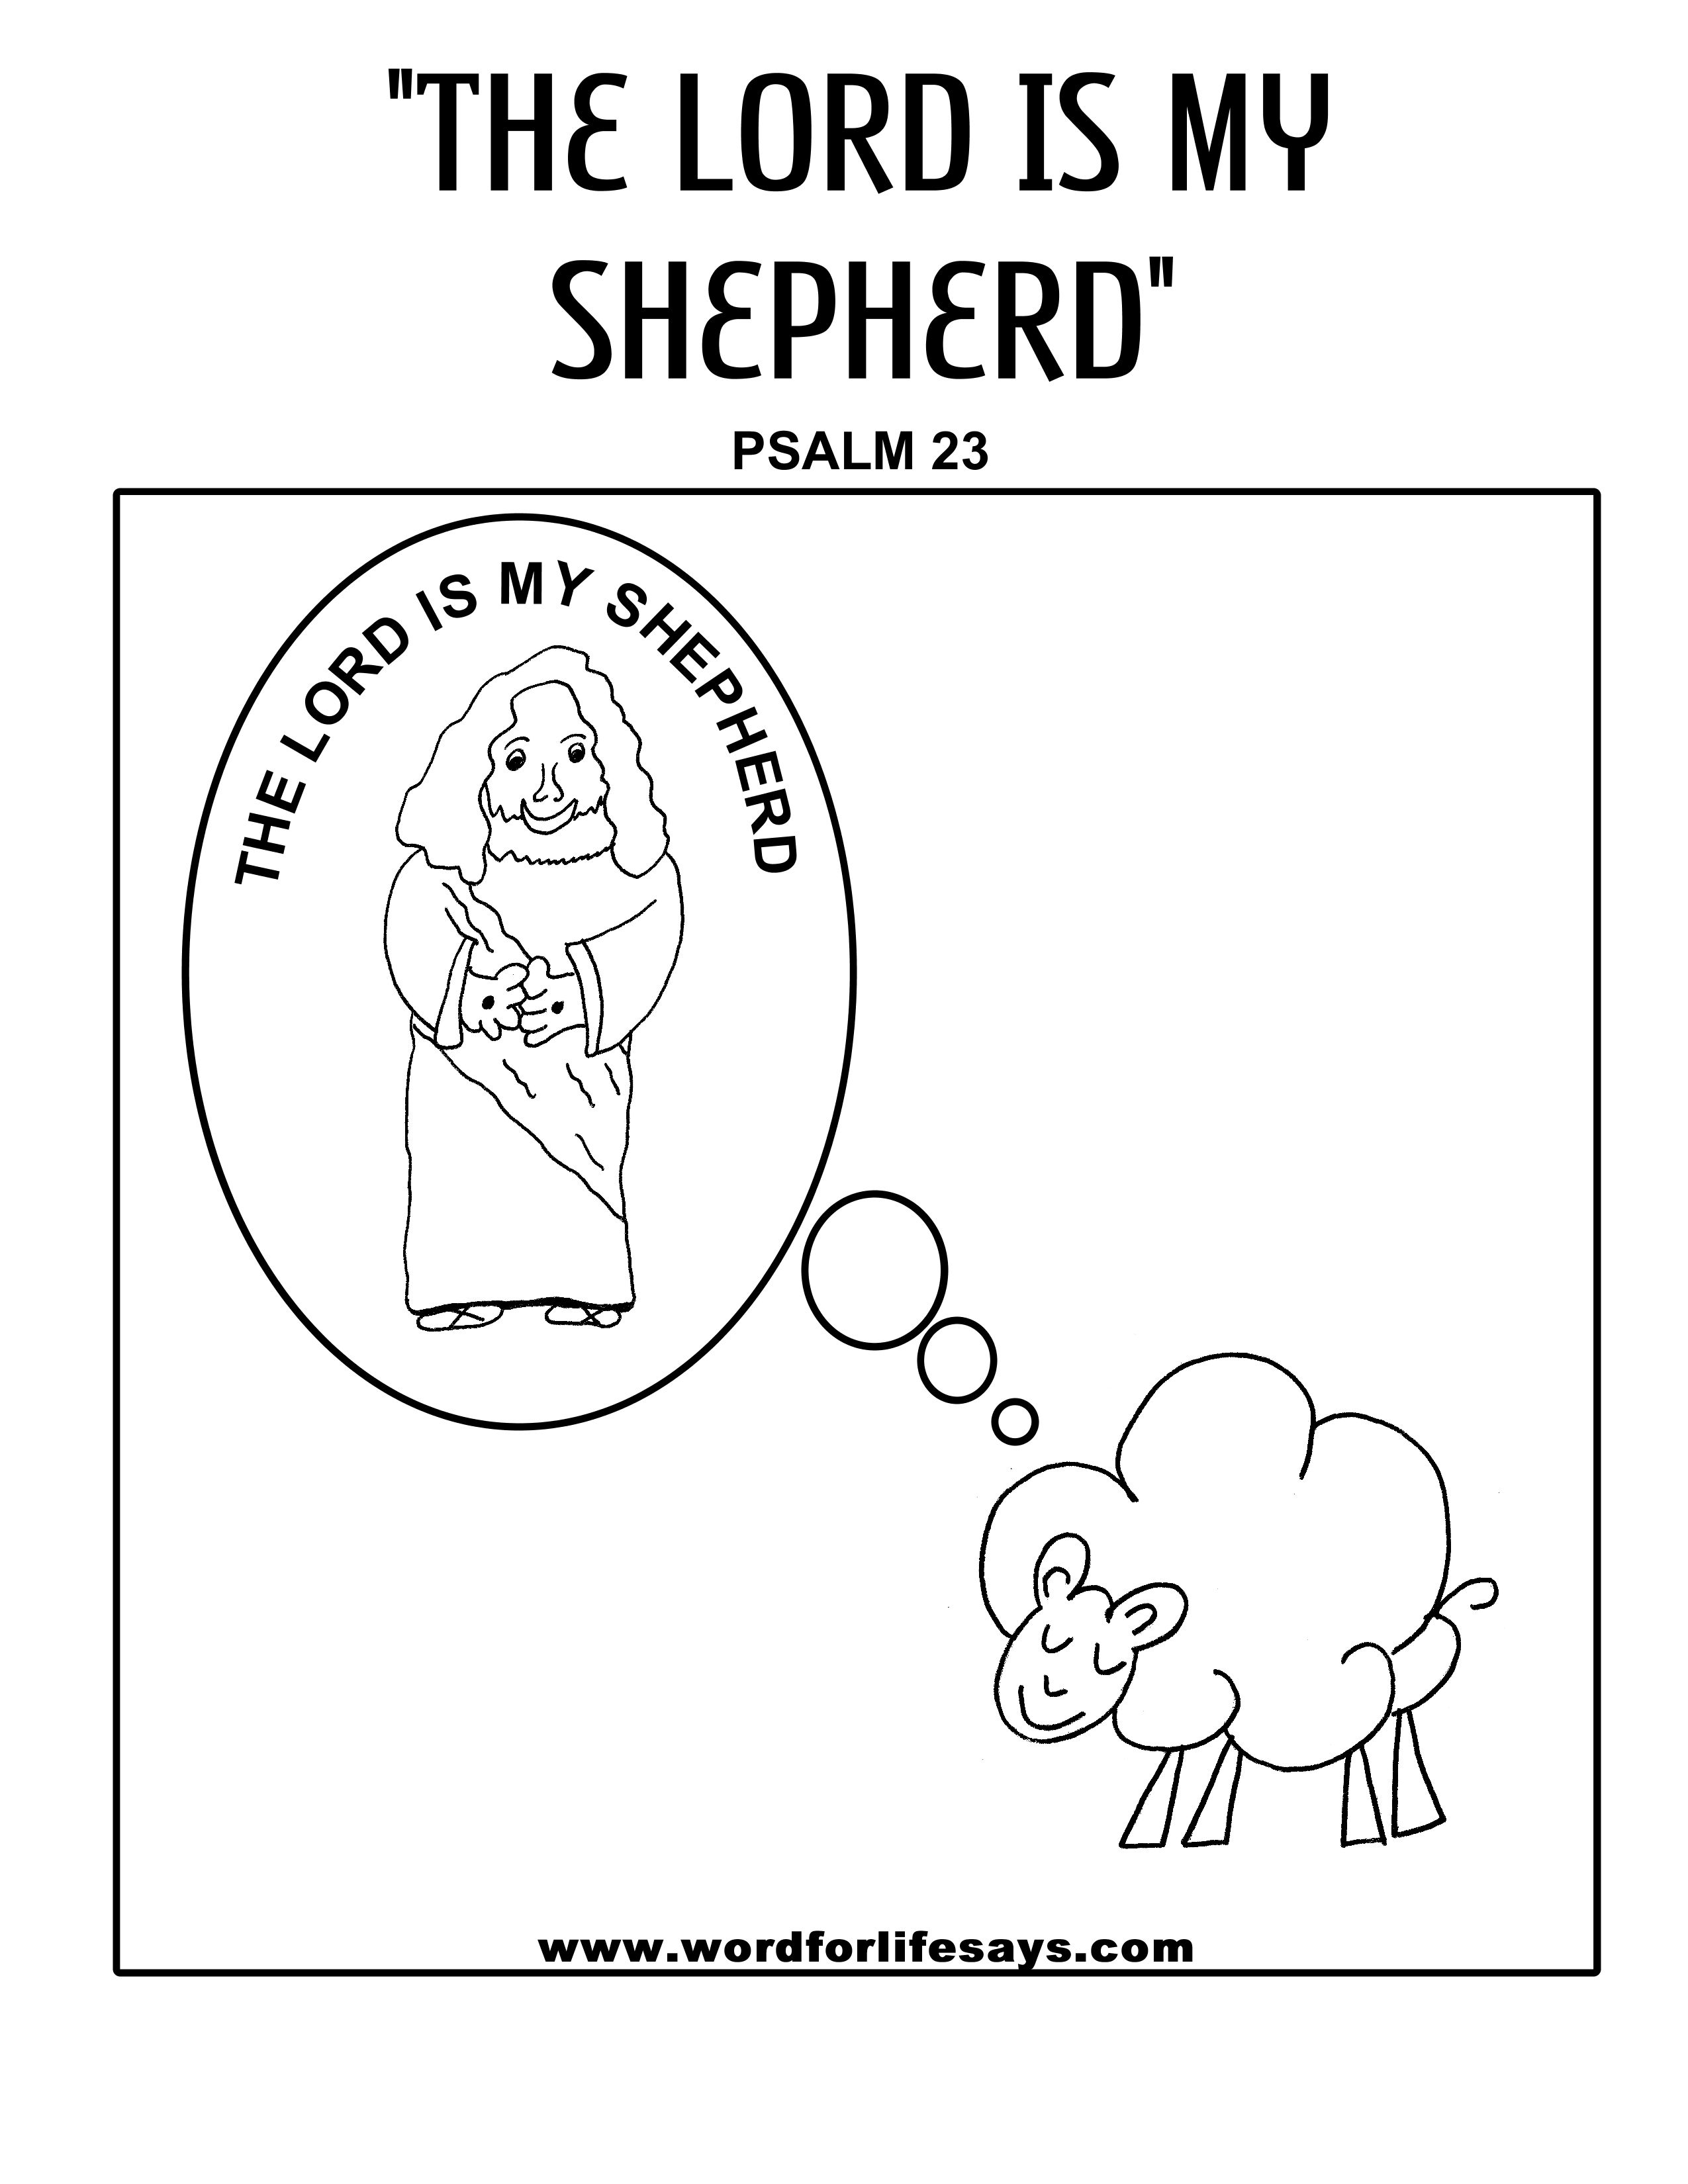 Free The Lord Is My Shepherd Coloring Page, Download Free Clip Art ... | 3300x2550